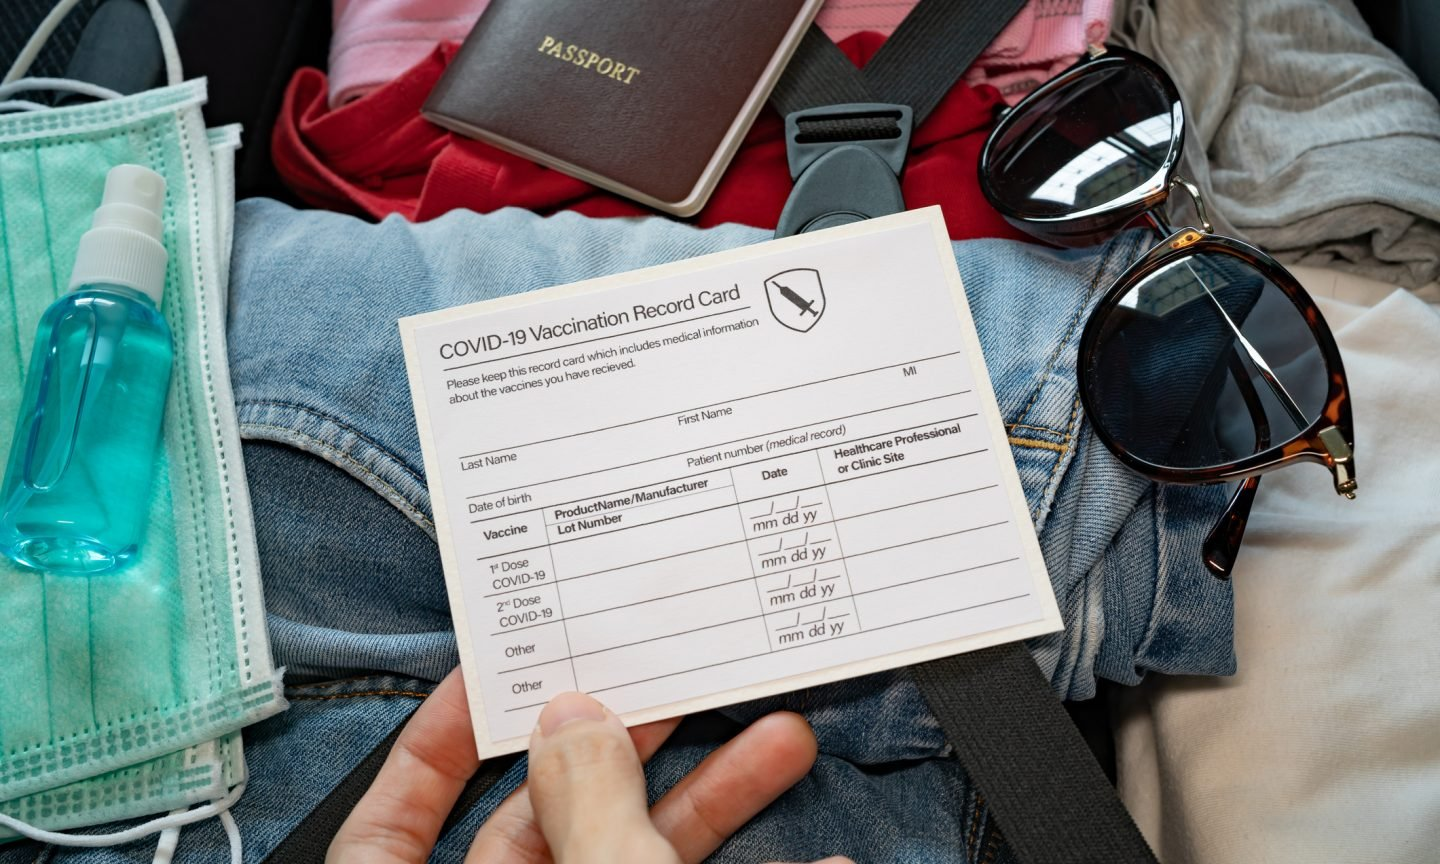 Do You Need to Pack Your COVID-19 Vaccination Card on Your Next Trip?